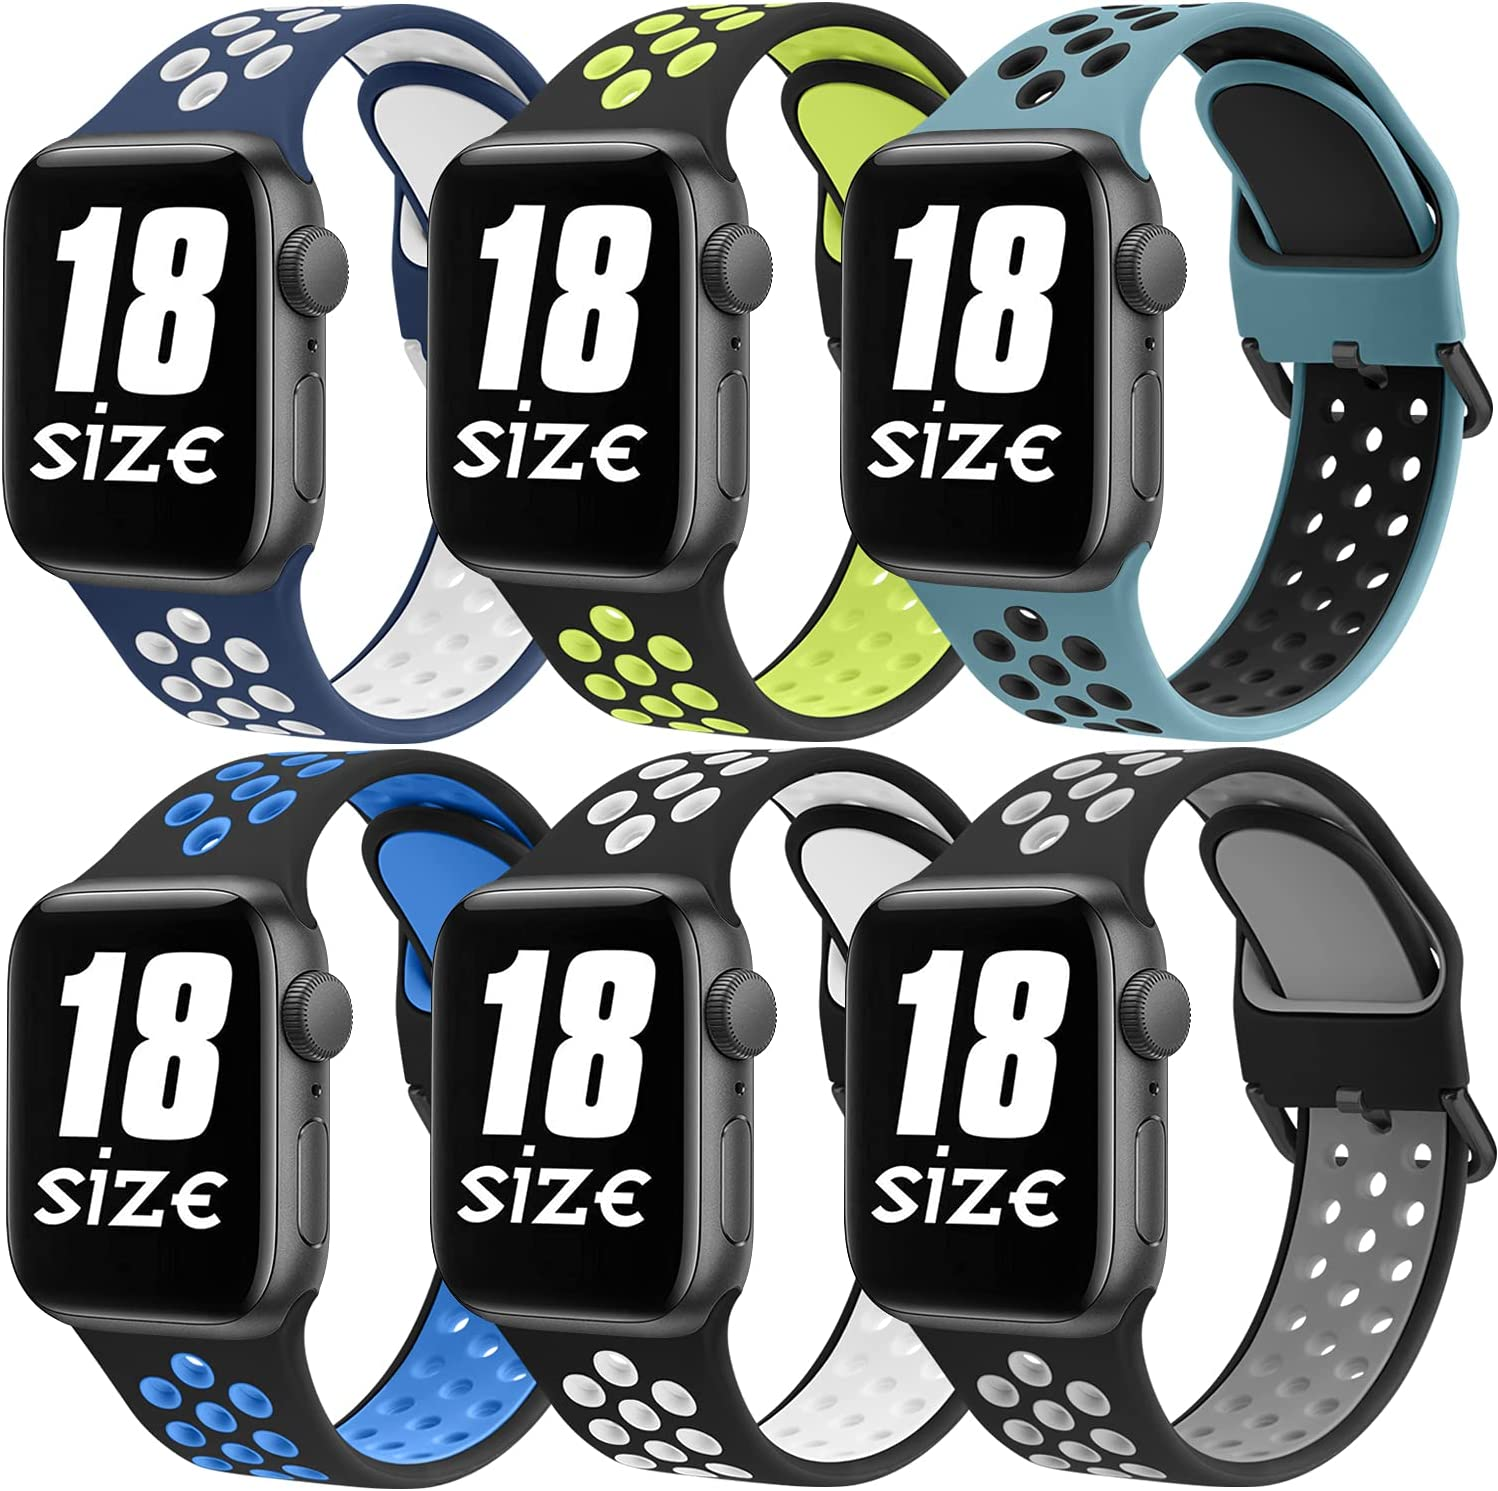 [6 Pack] Bands Compatible with Apple Watch Bands 42mm 44mm Series 6 5 4 3 2 1 & SE, Soft Silicone Replacement Wristbands Compatible for iWatch Series SE 6 5 4 3 2 1 (6 Pack C, Large)